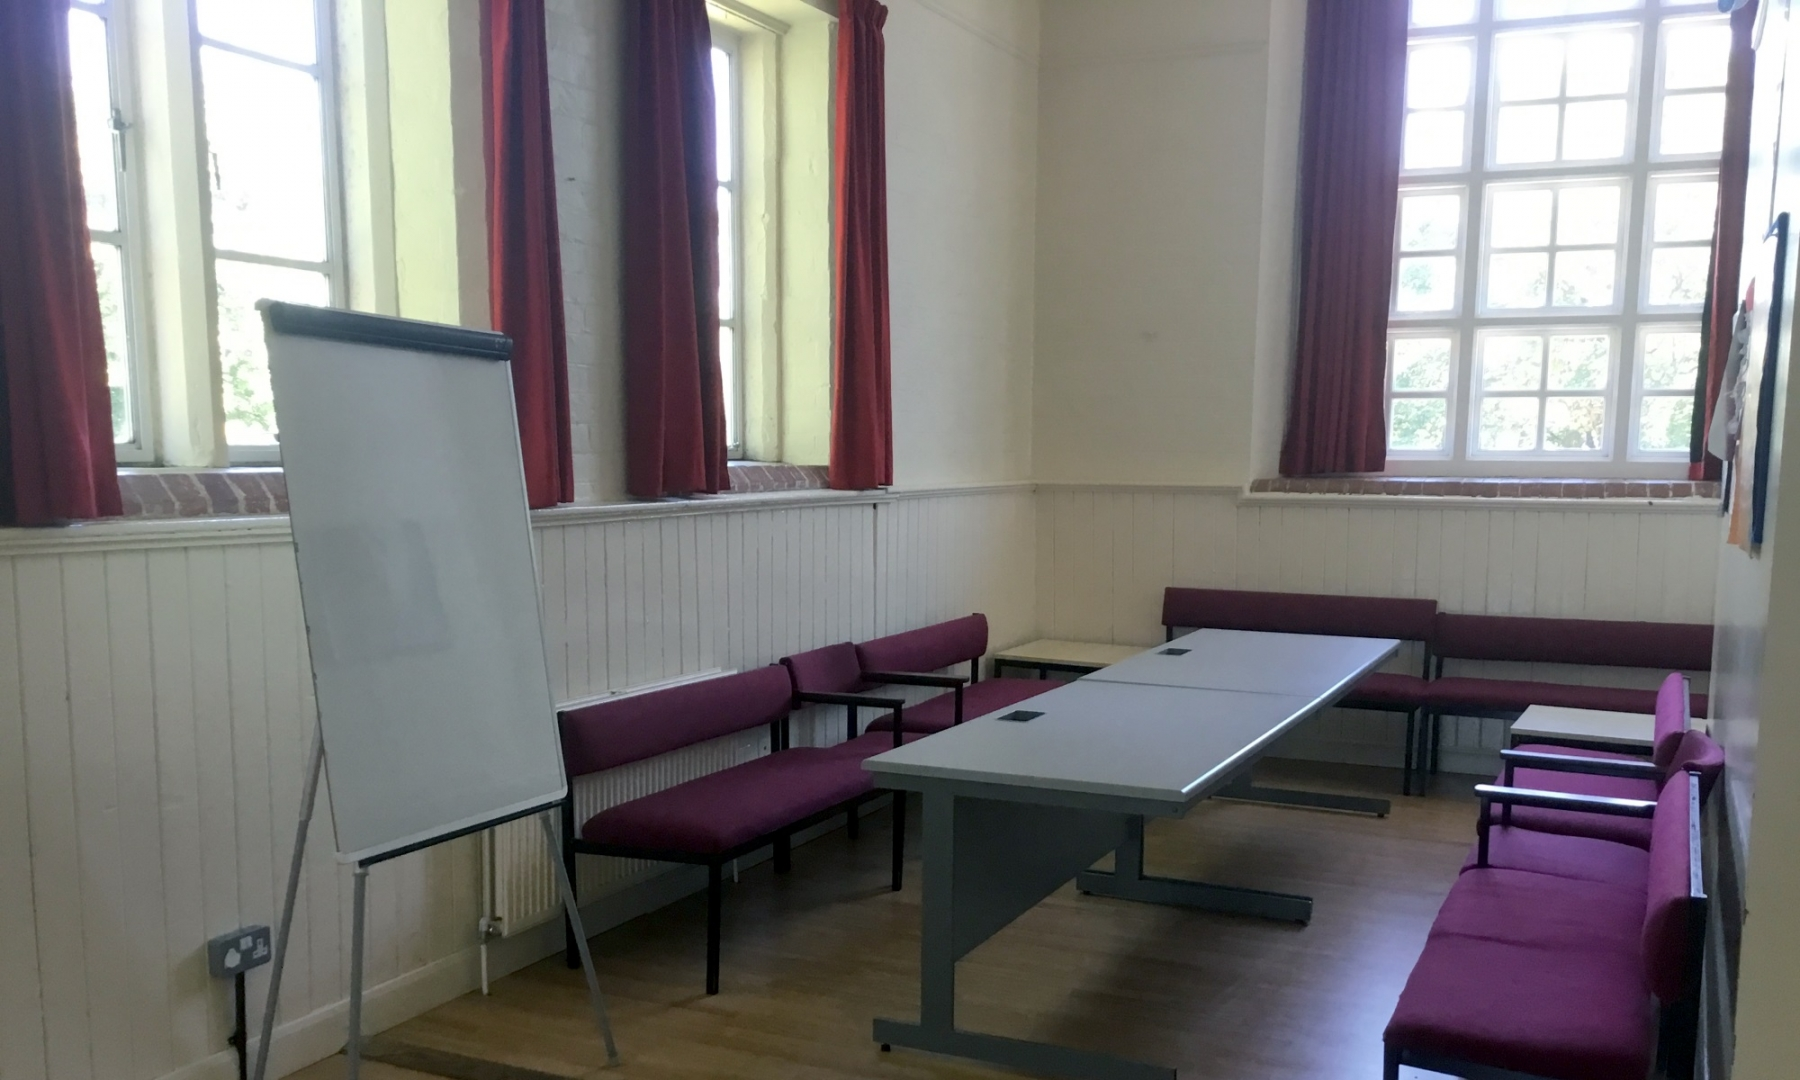 Room 4 - Picture 3